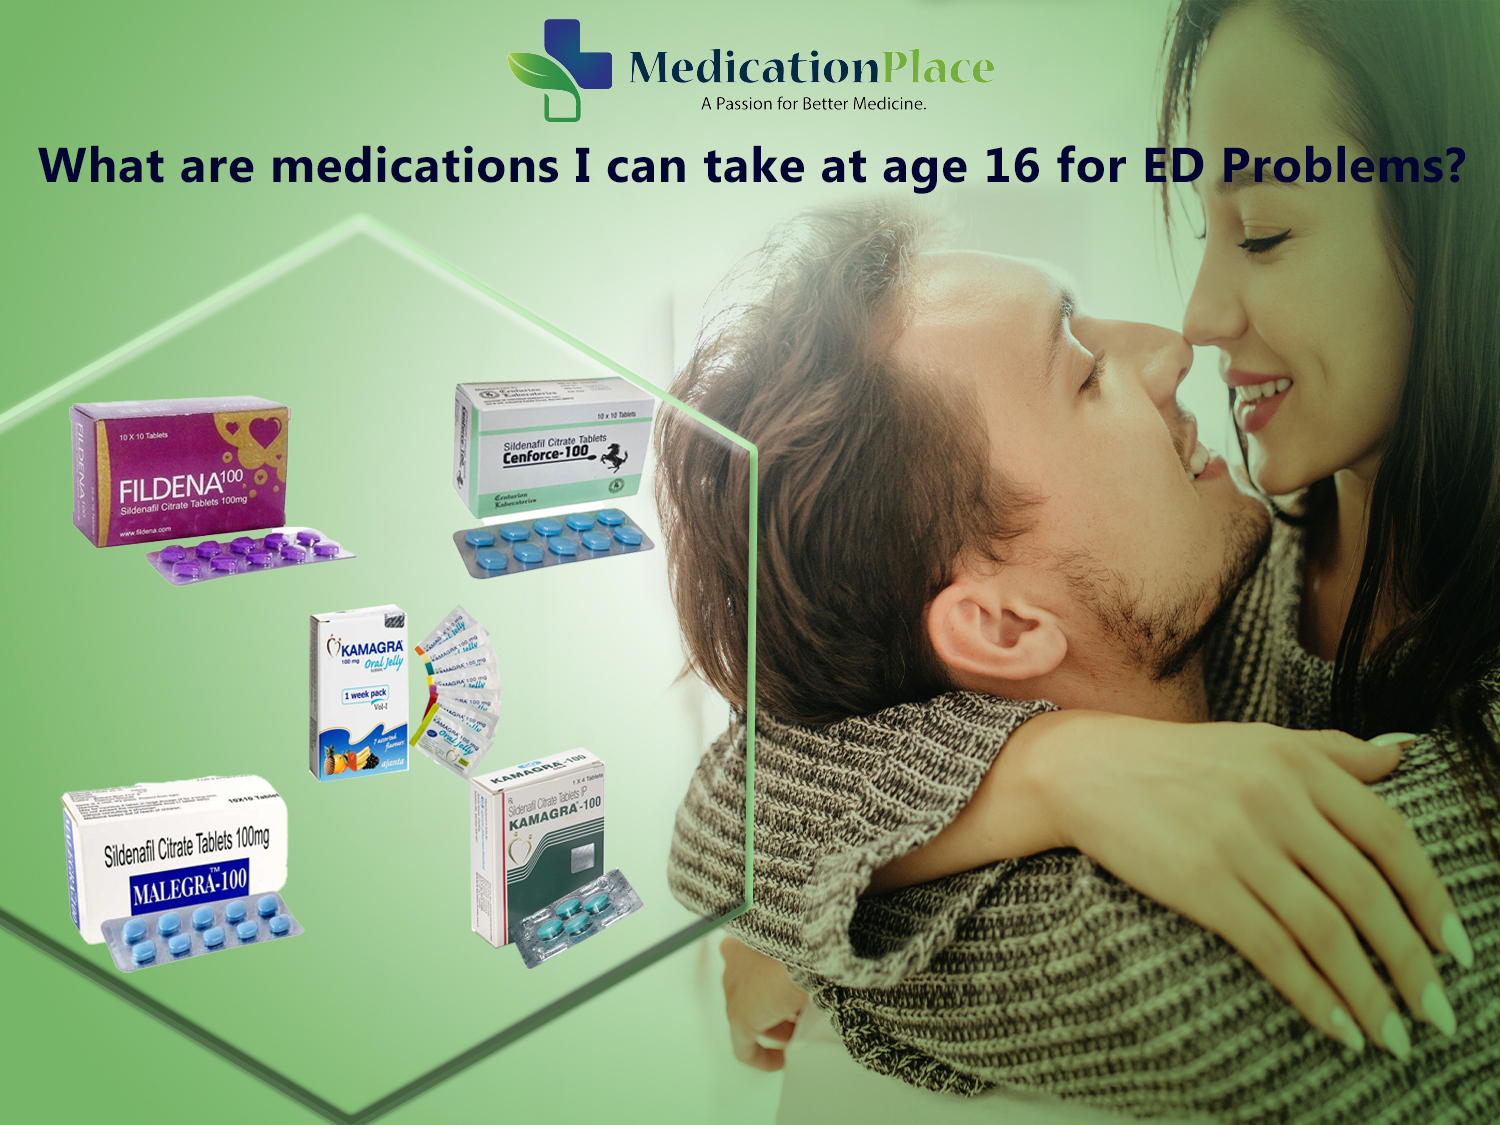 What are medications I can take at age 16 for Erectile Dysfunction ?